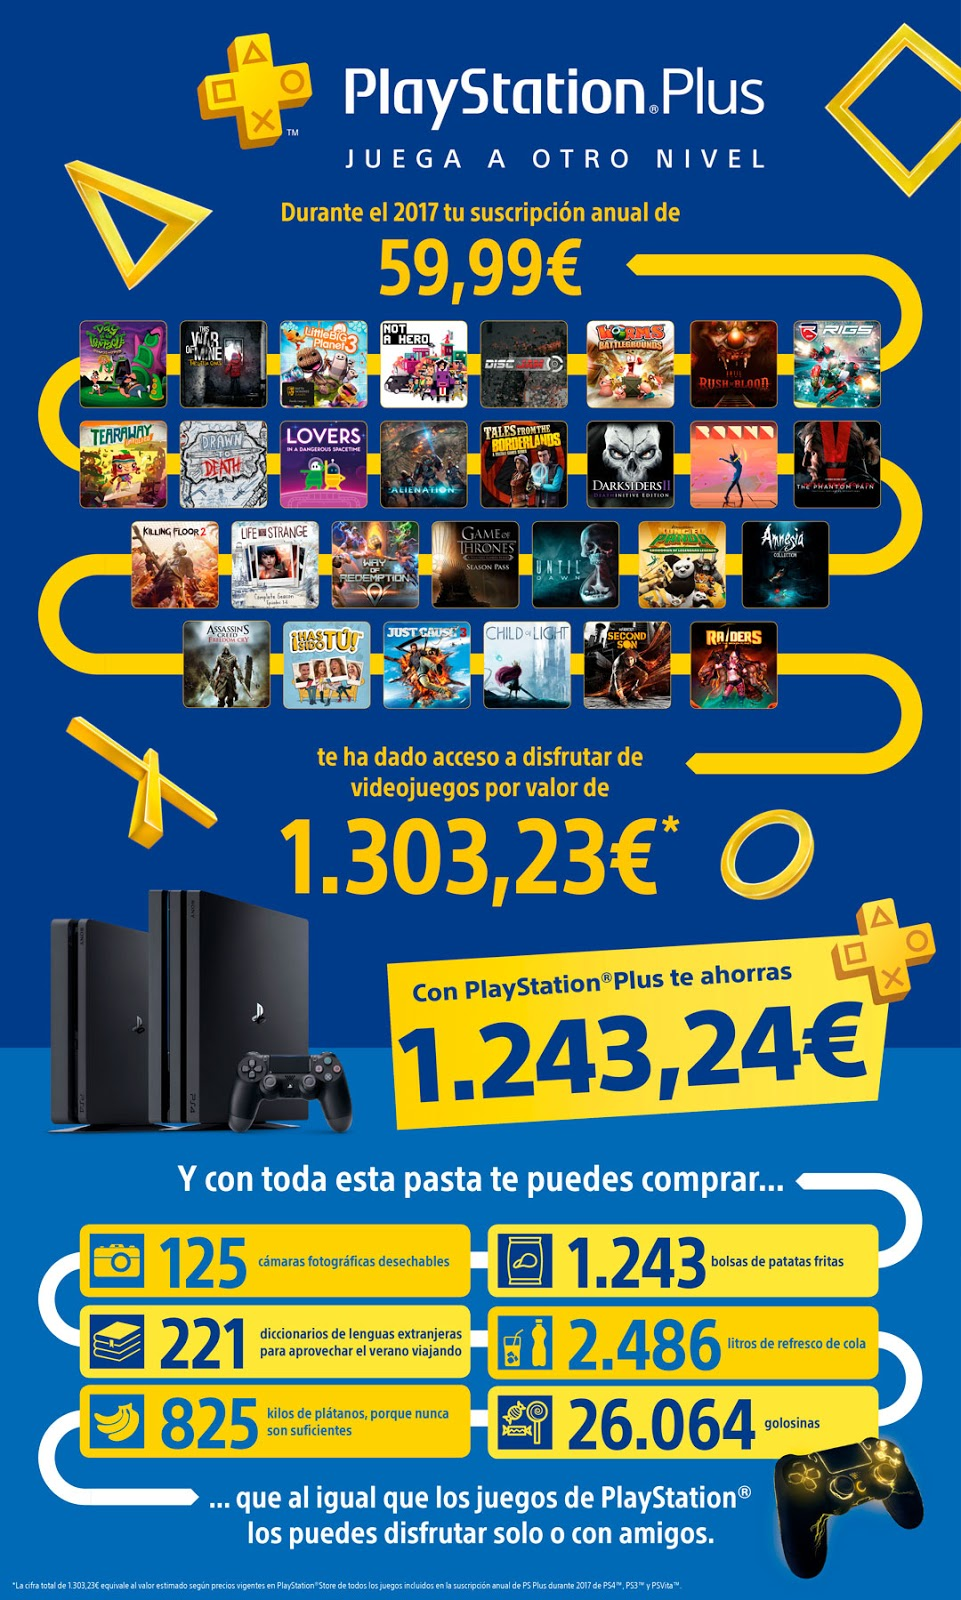 PlayStation Plus comparte datos sobre este año 2017